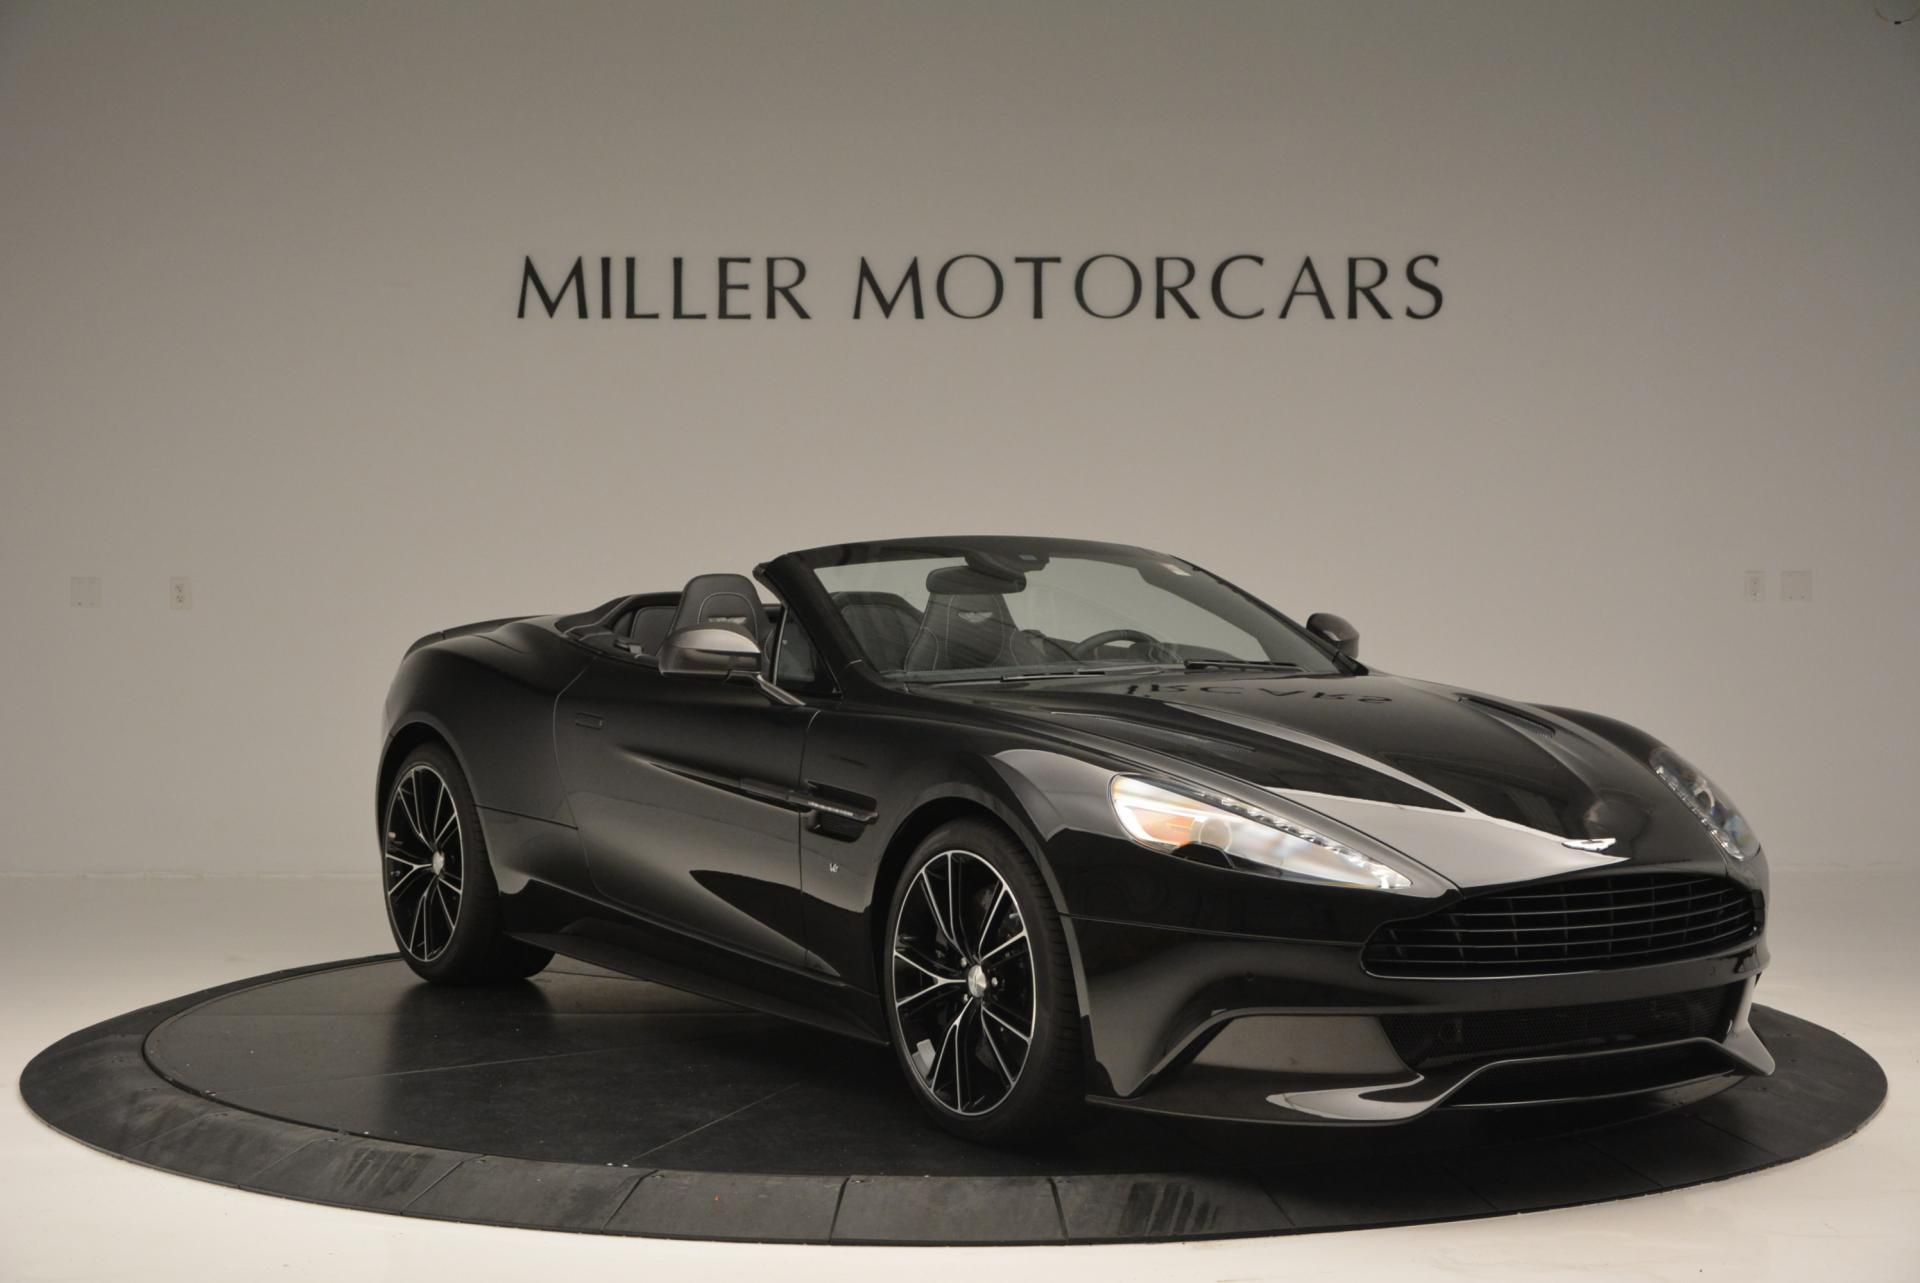 New 2016 Aston Martin Vanquish Volante For Sale In Greenwich, CT 83_p11